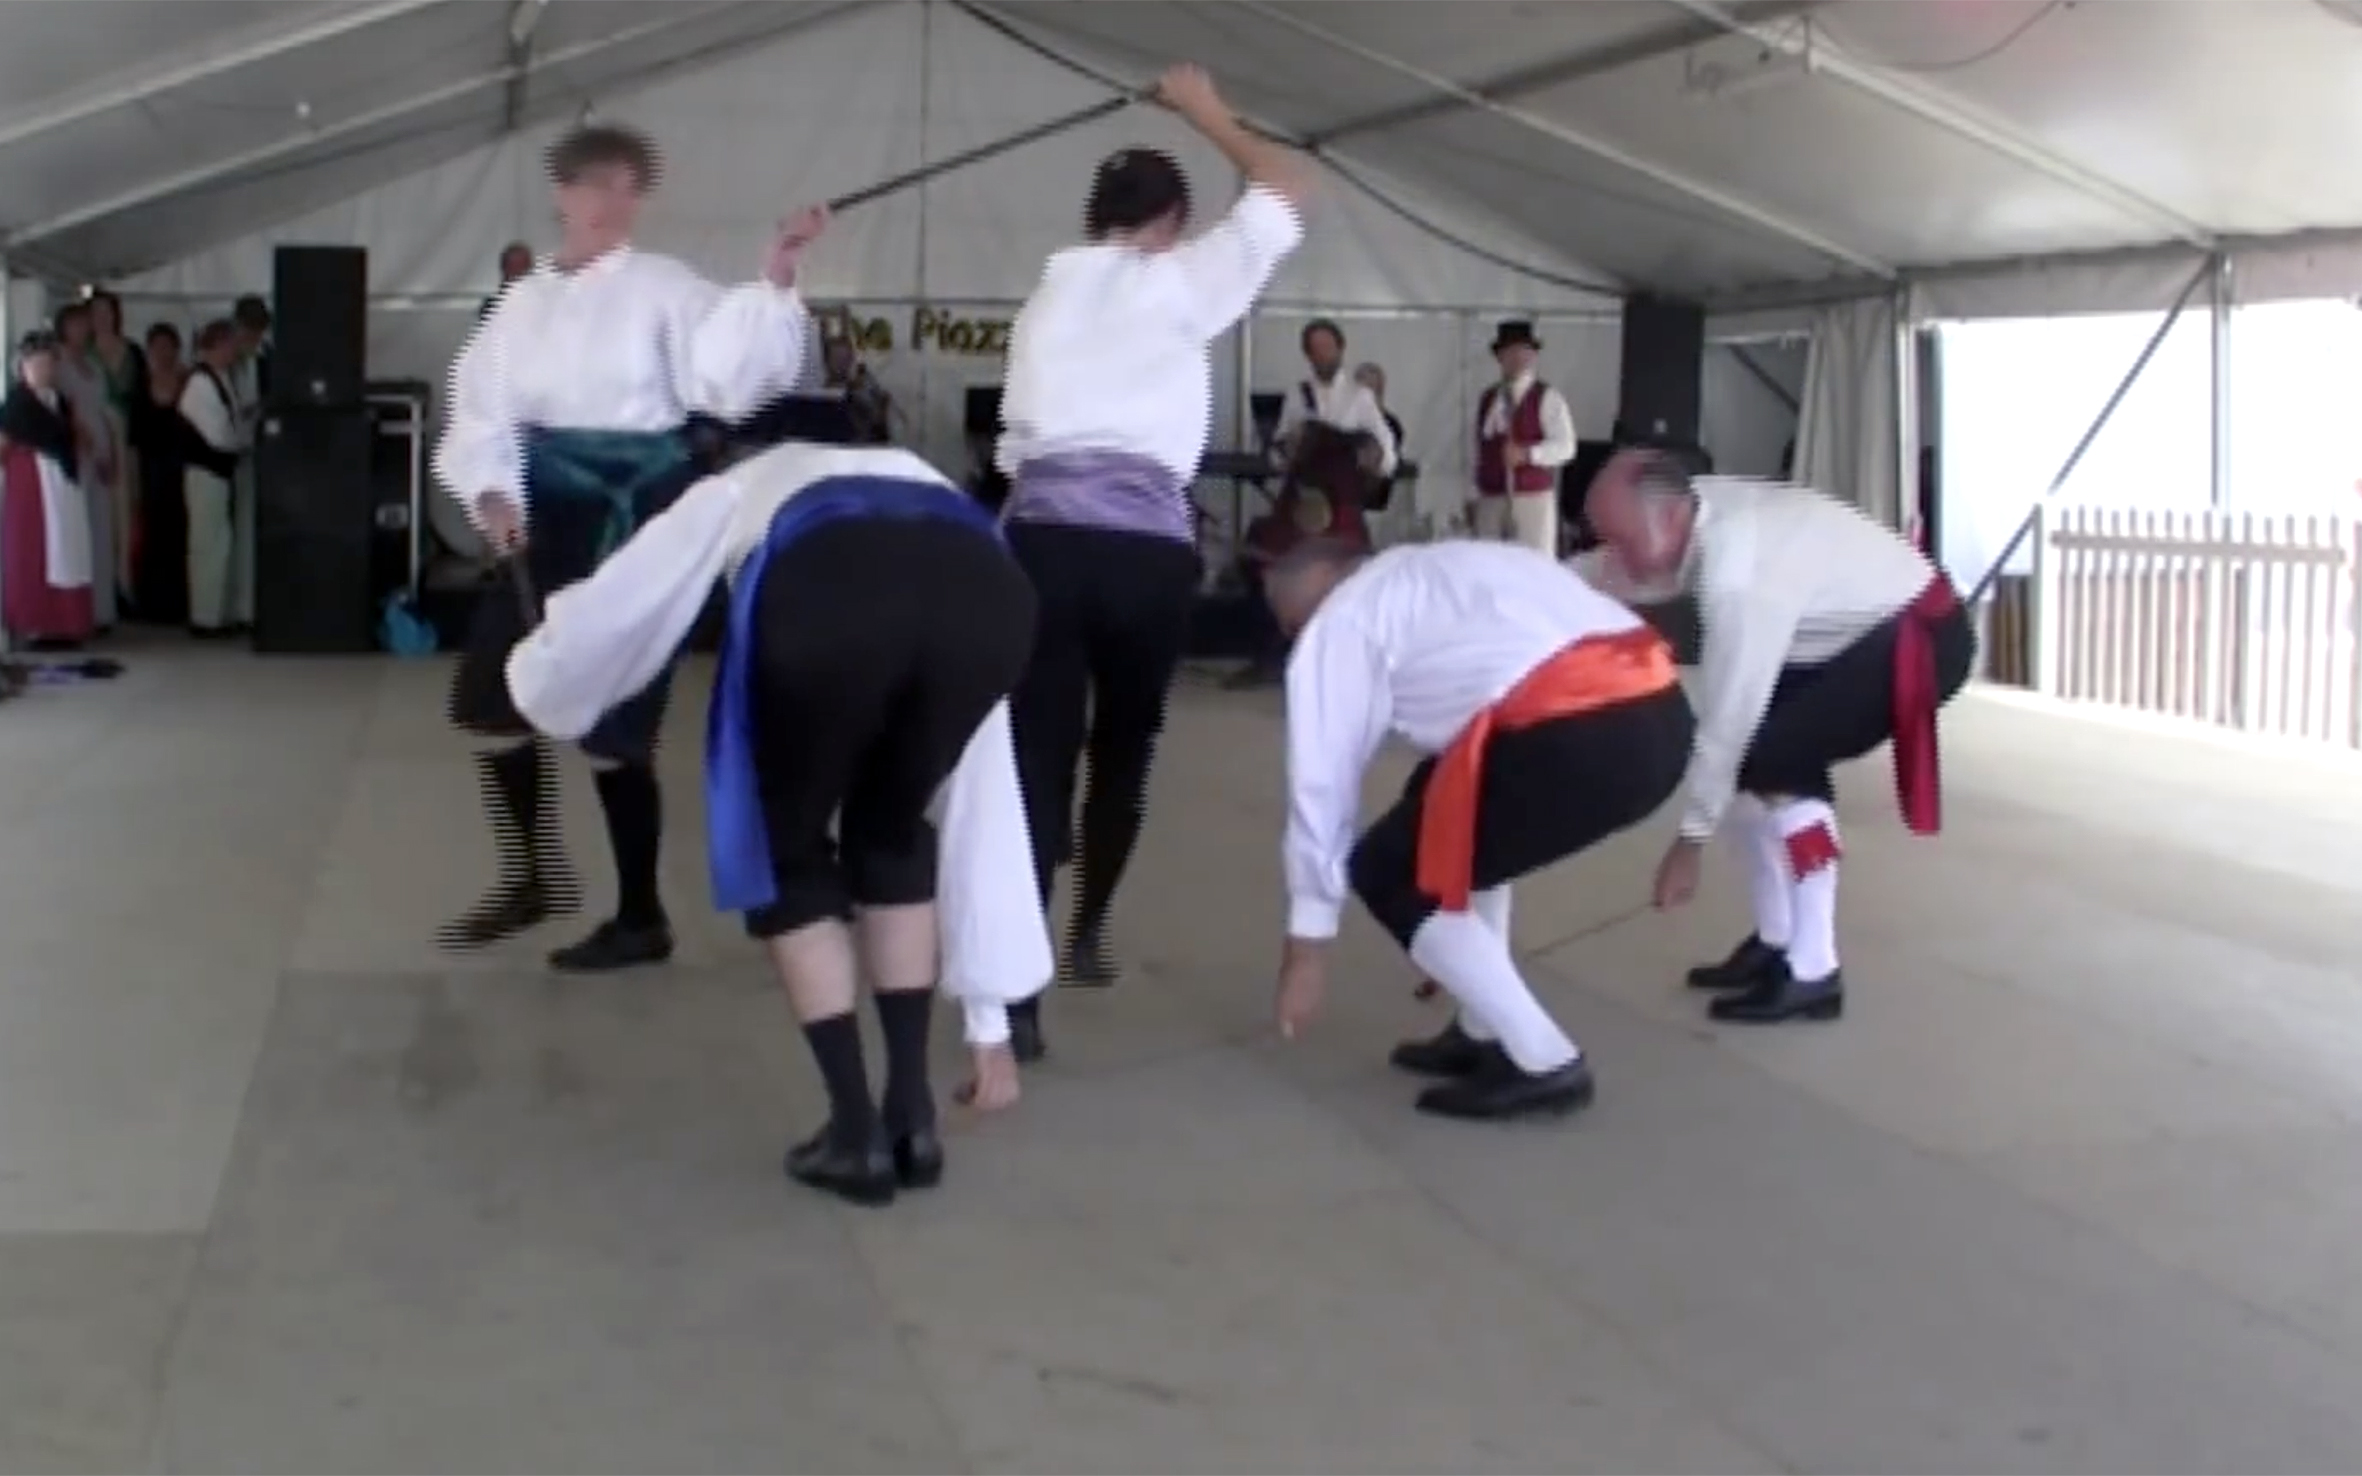 552.Longsword Dance / England - Longsword Dance is a hilt-and-point sword dance recorded mainly in Yorkshire, England. The dances are usually performed around Christmas time and are believed to derive from a rite performed to enable a fruitful harvest.